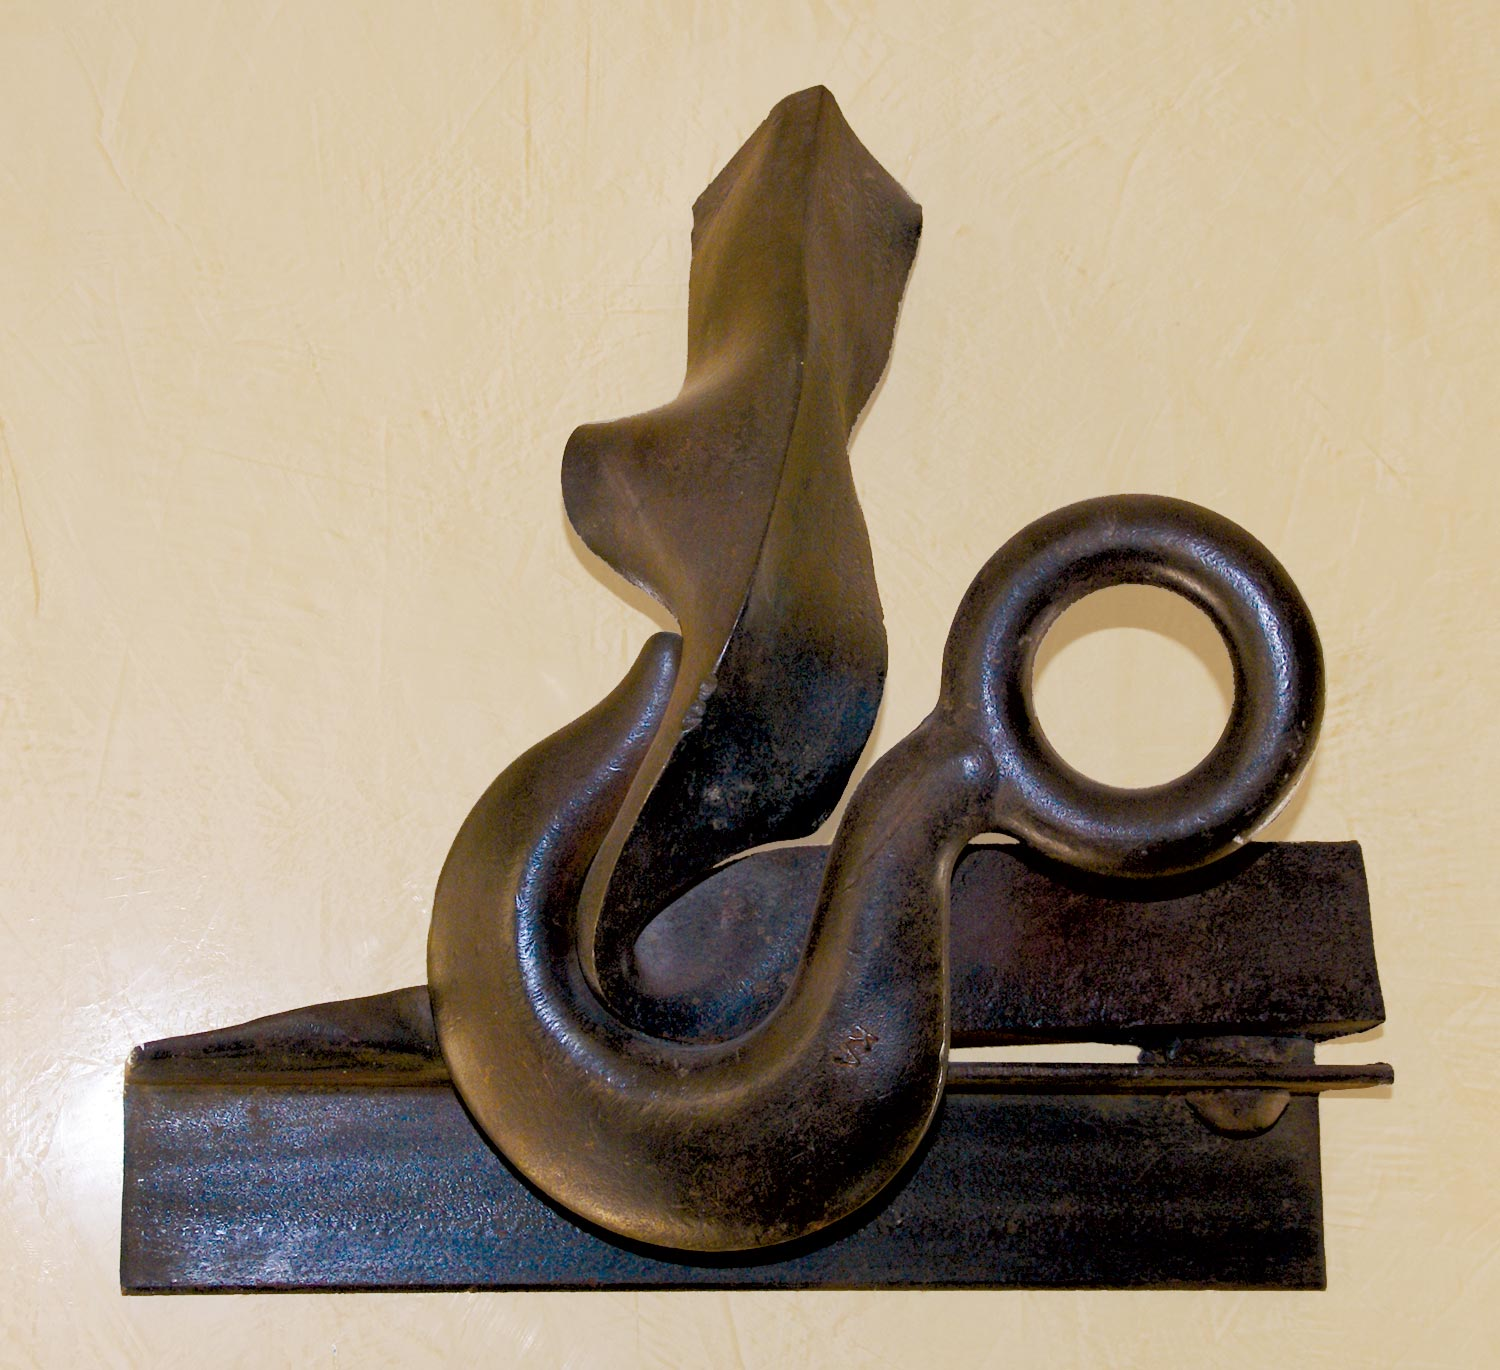 Hook Sculptures by Craig Shankles